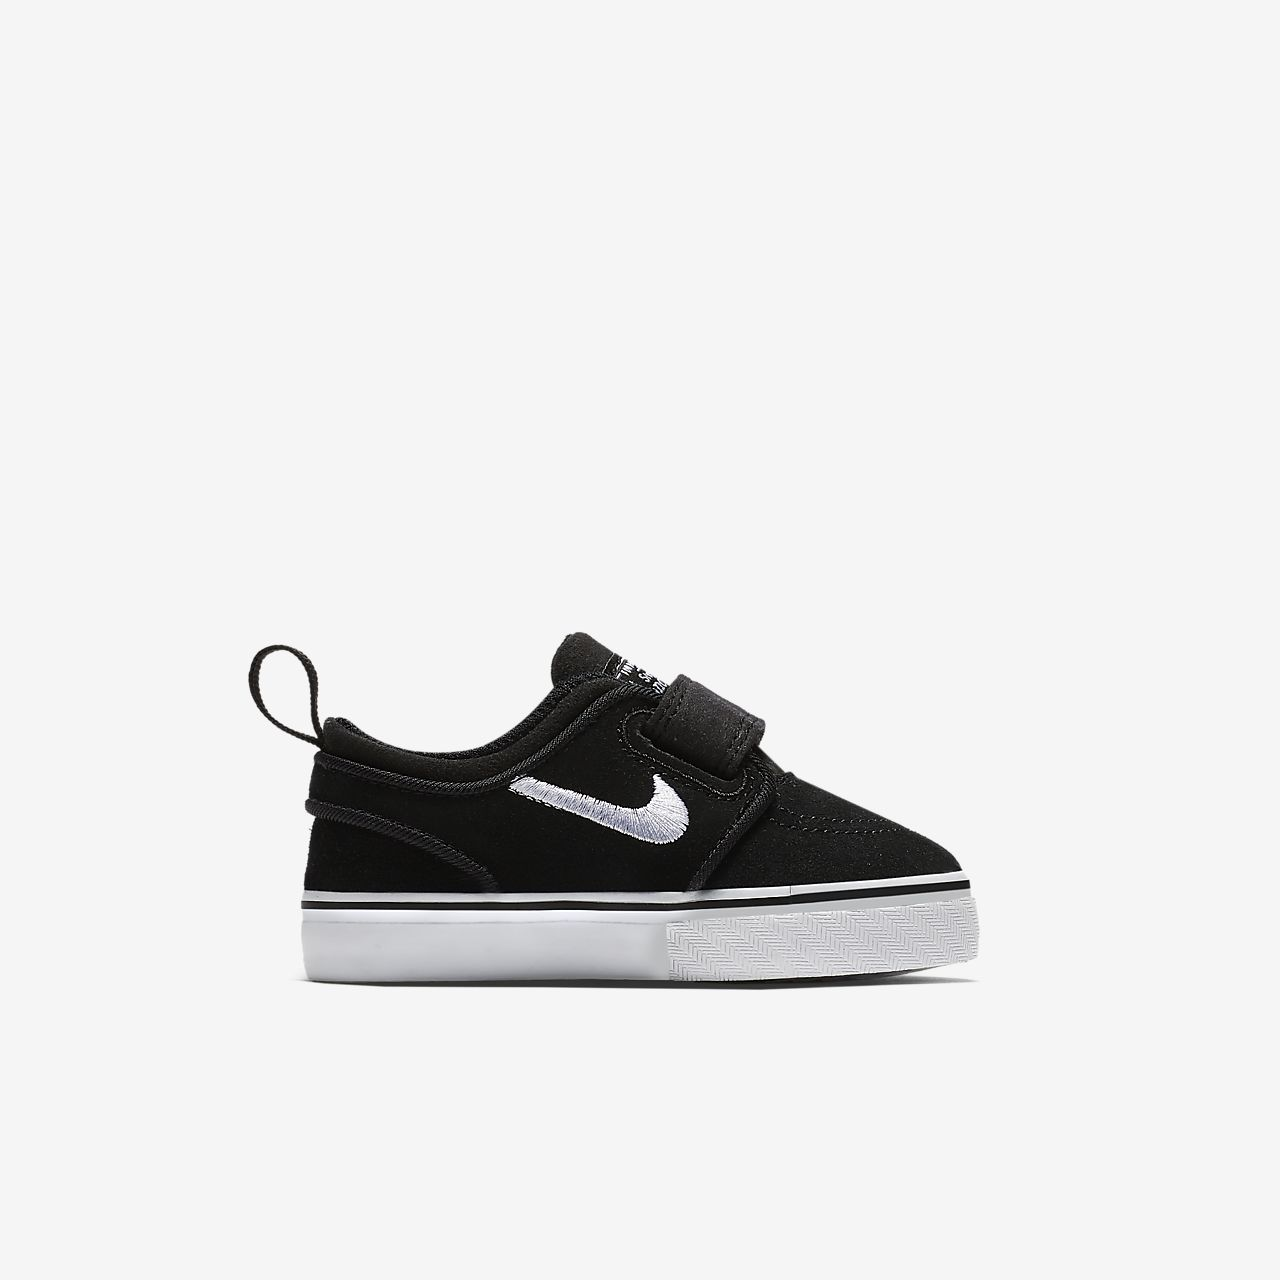 new style c84e6 b802d ... Nike SB Stefan Janoski Infant Toddler Kids  Shoe